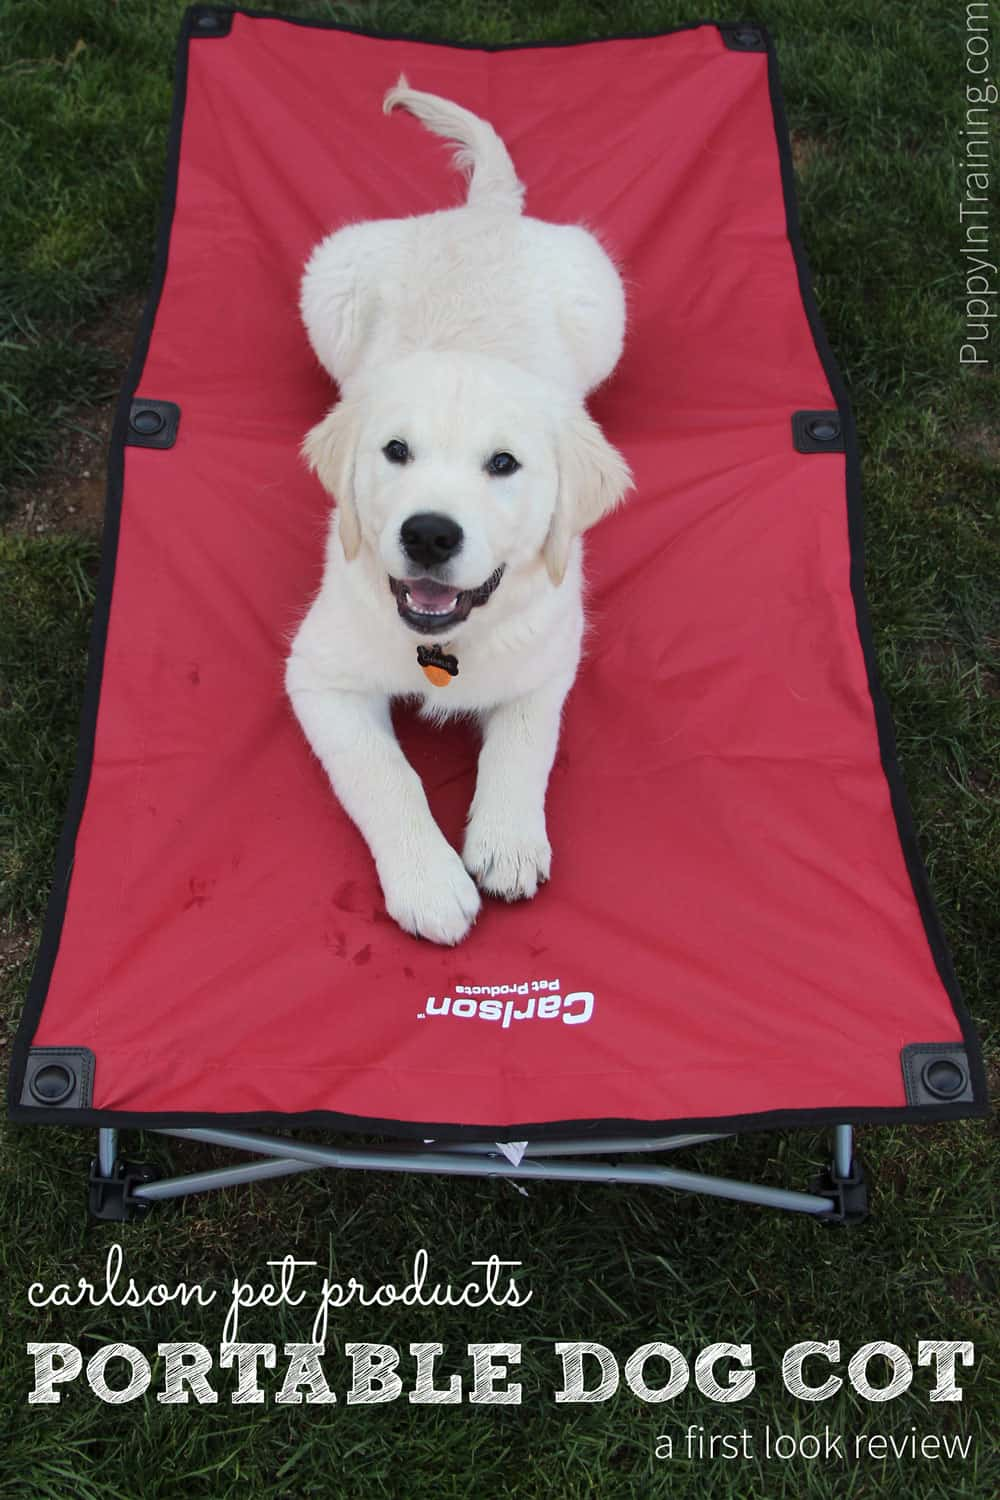 Carlson Portable Dog Cot Review. Our first look at the portable dog bed. Great for camping, hiking, backpacking...and other outdoor activities.